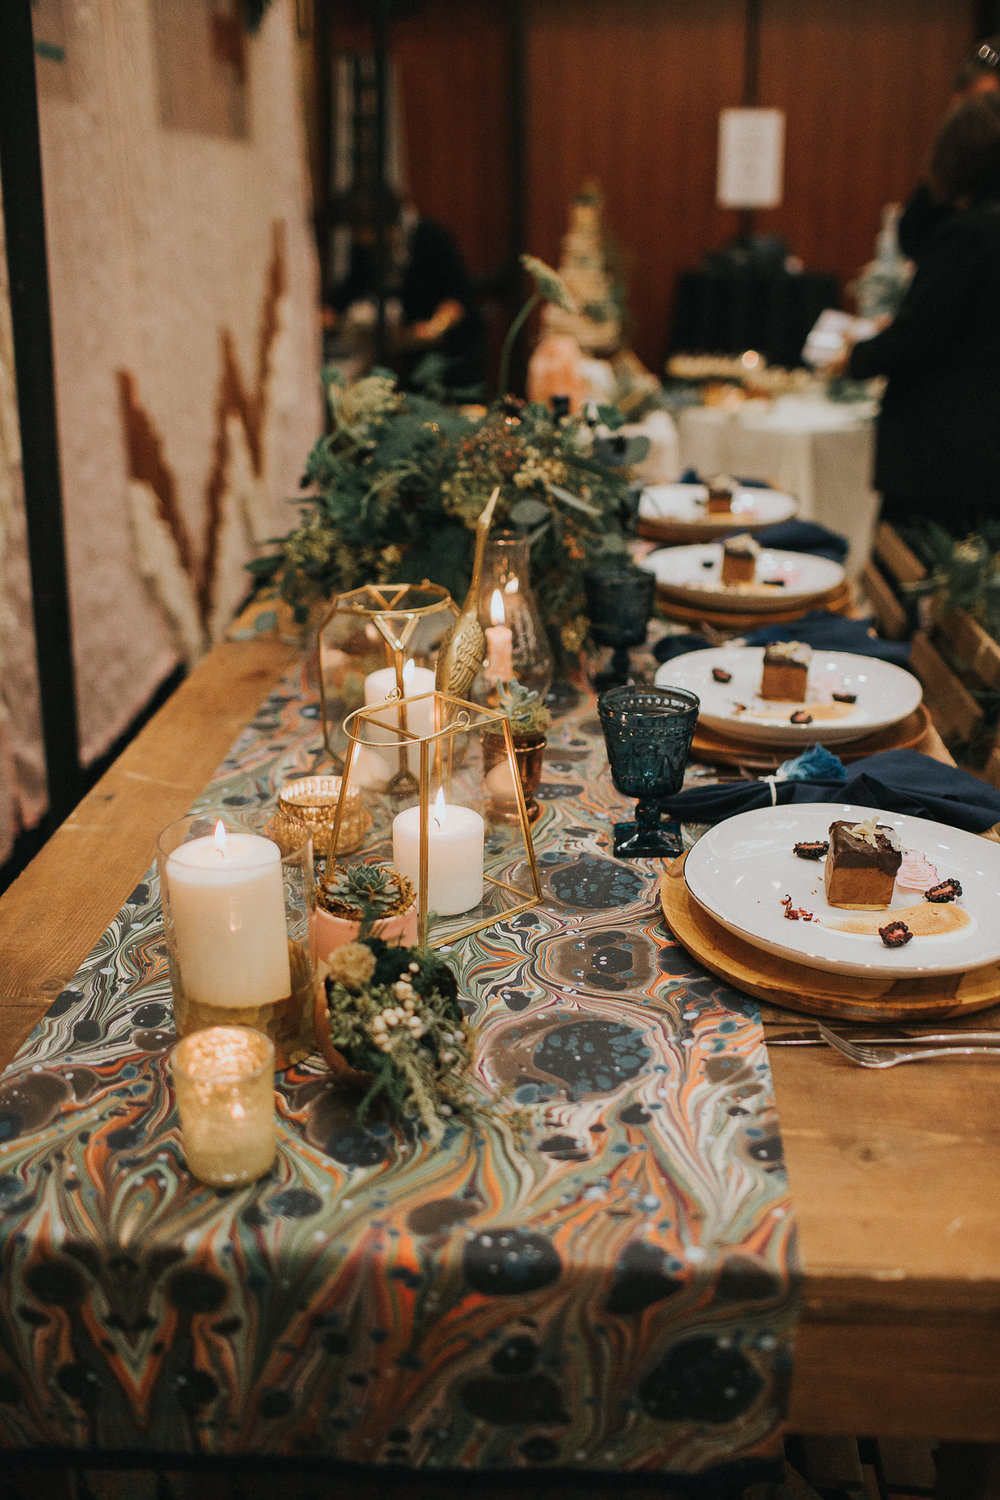 Our central tablescape with a little bit from each of us.  (Rentals from AE Creative.  Florals by us.  Plated dessert by Foxtail Bakeshop.  Oh and that amazing marbled runner is from our good friend Bend artist Karen Ruane, who is just expanding into home goods (!).